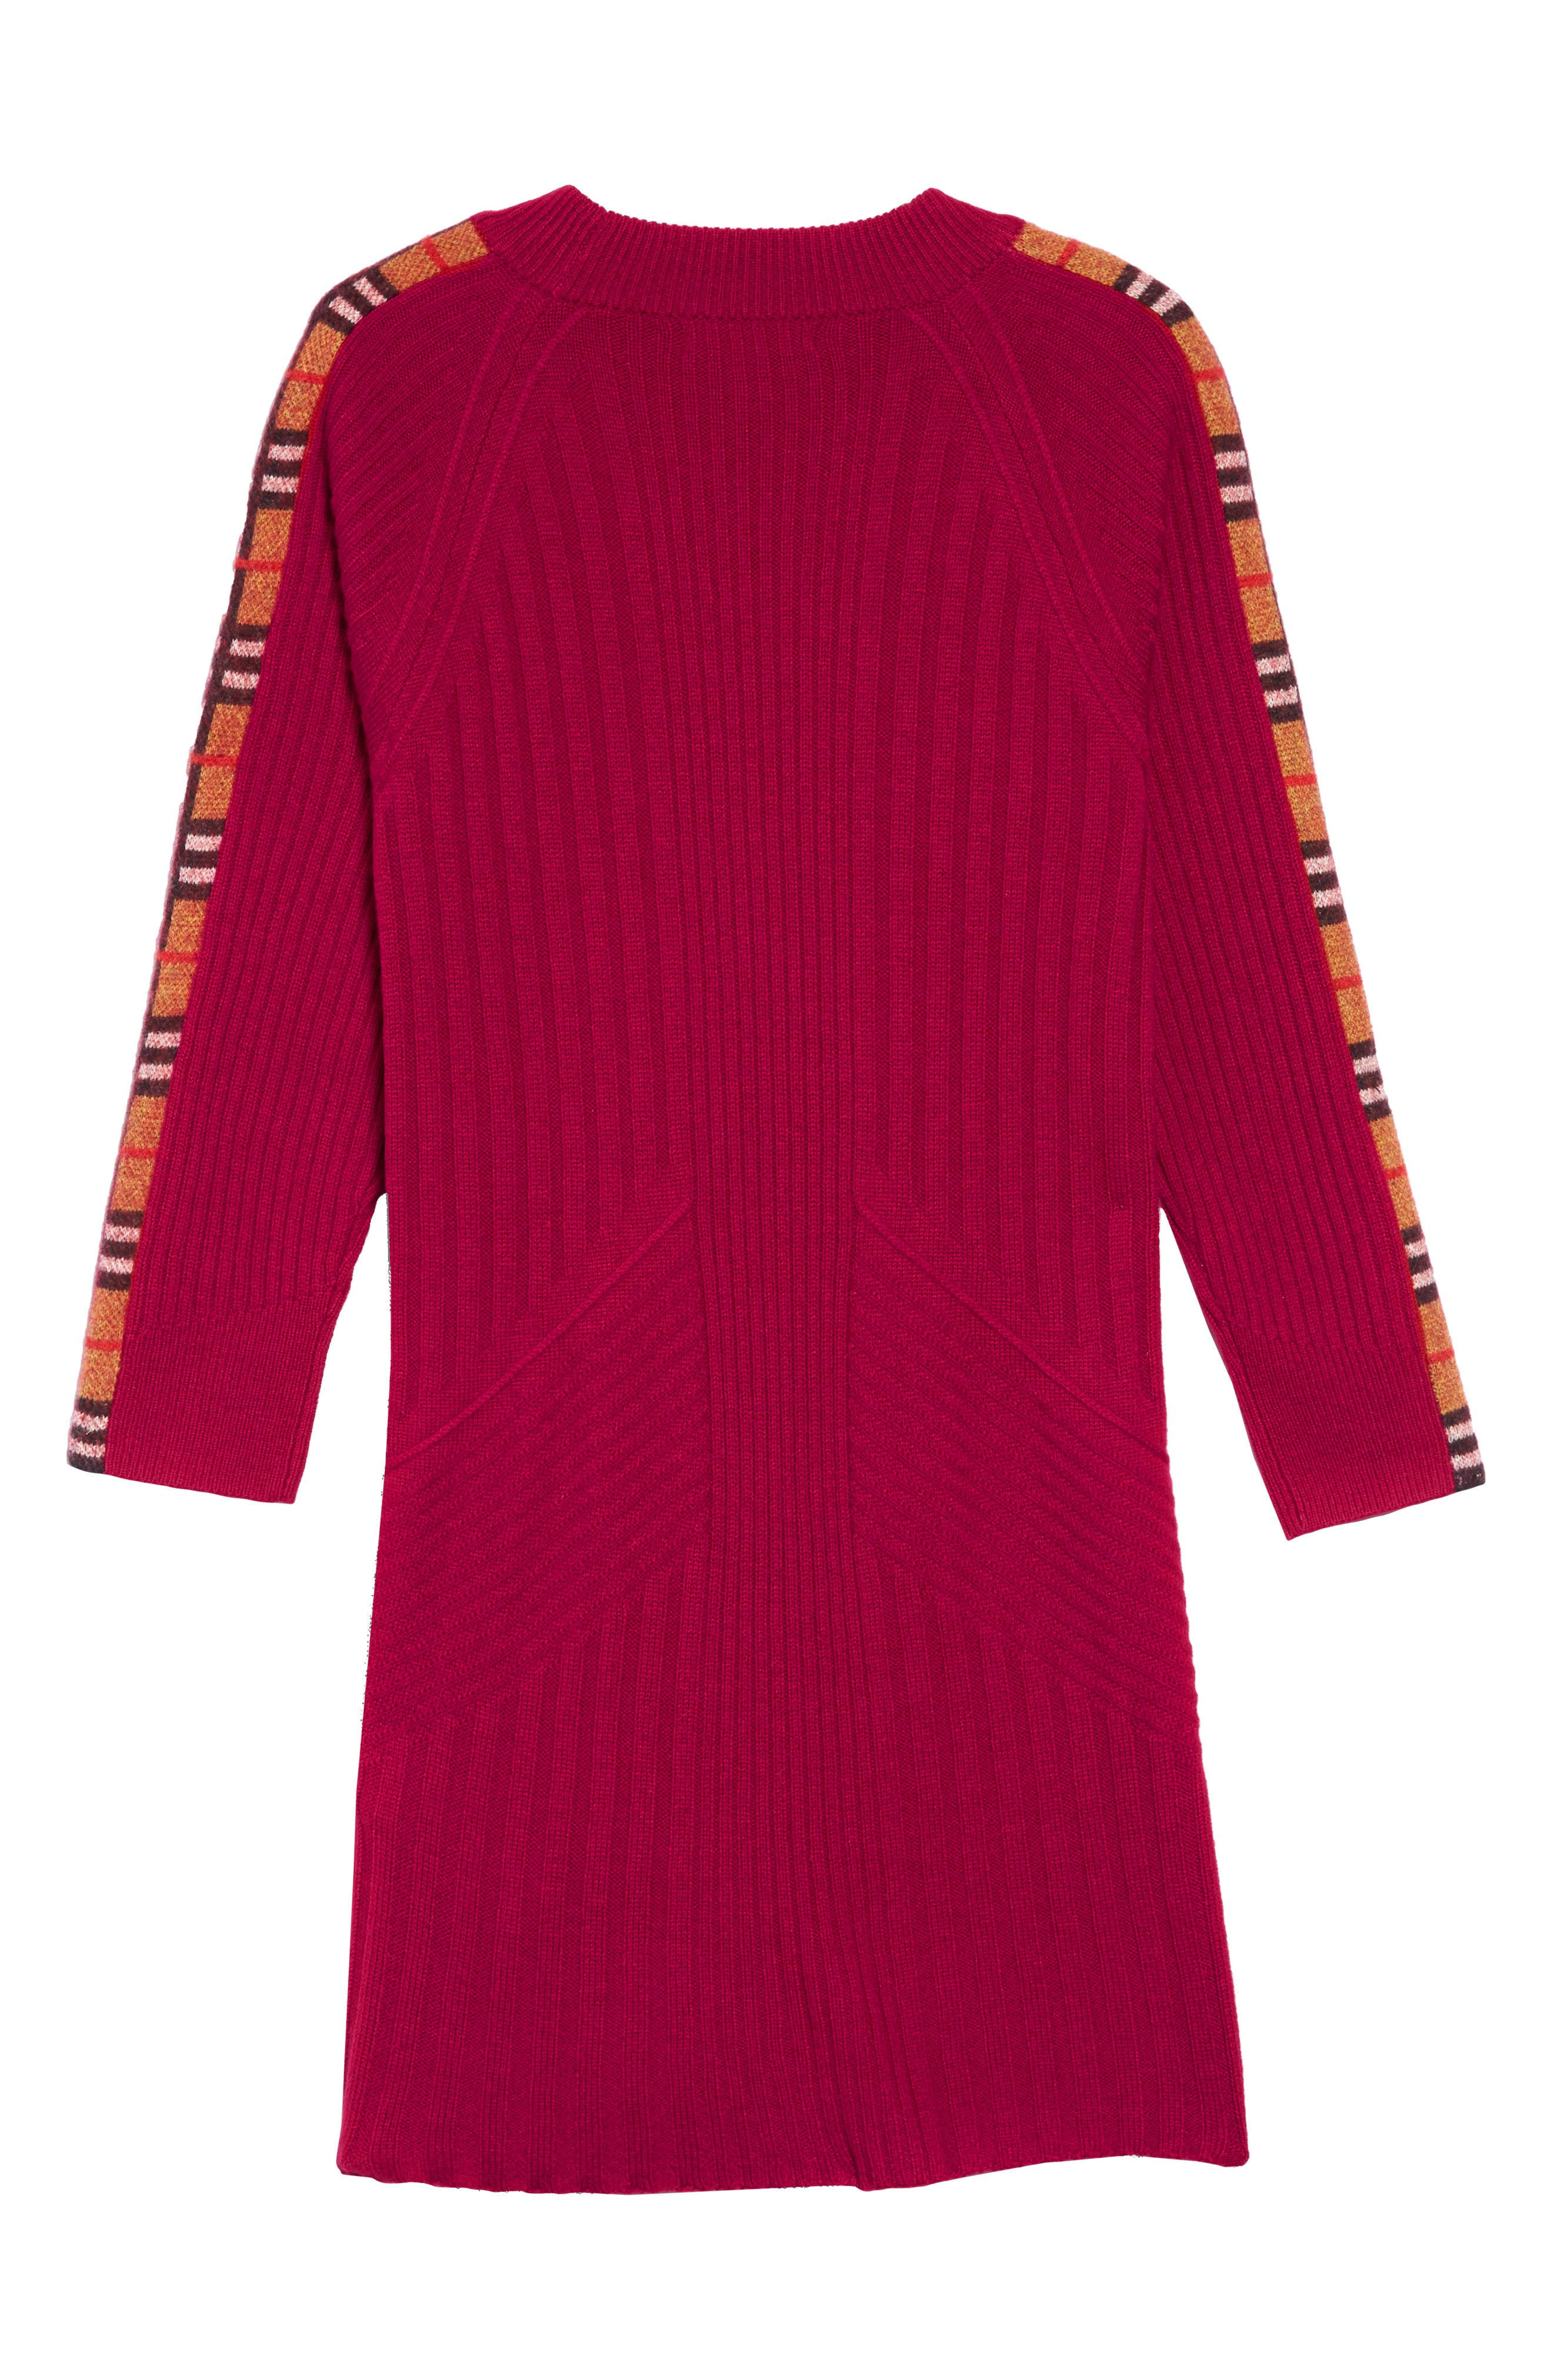 Kids Cathina Check Detail Wool & Cashmere Sweater Dress,                             Alternate thumbnail 2, color,                             BURGUNDY RED